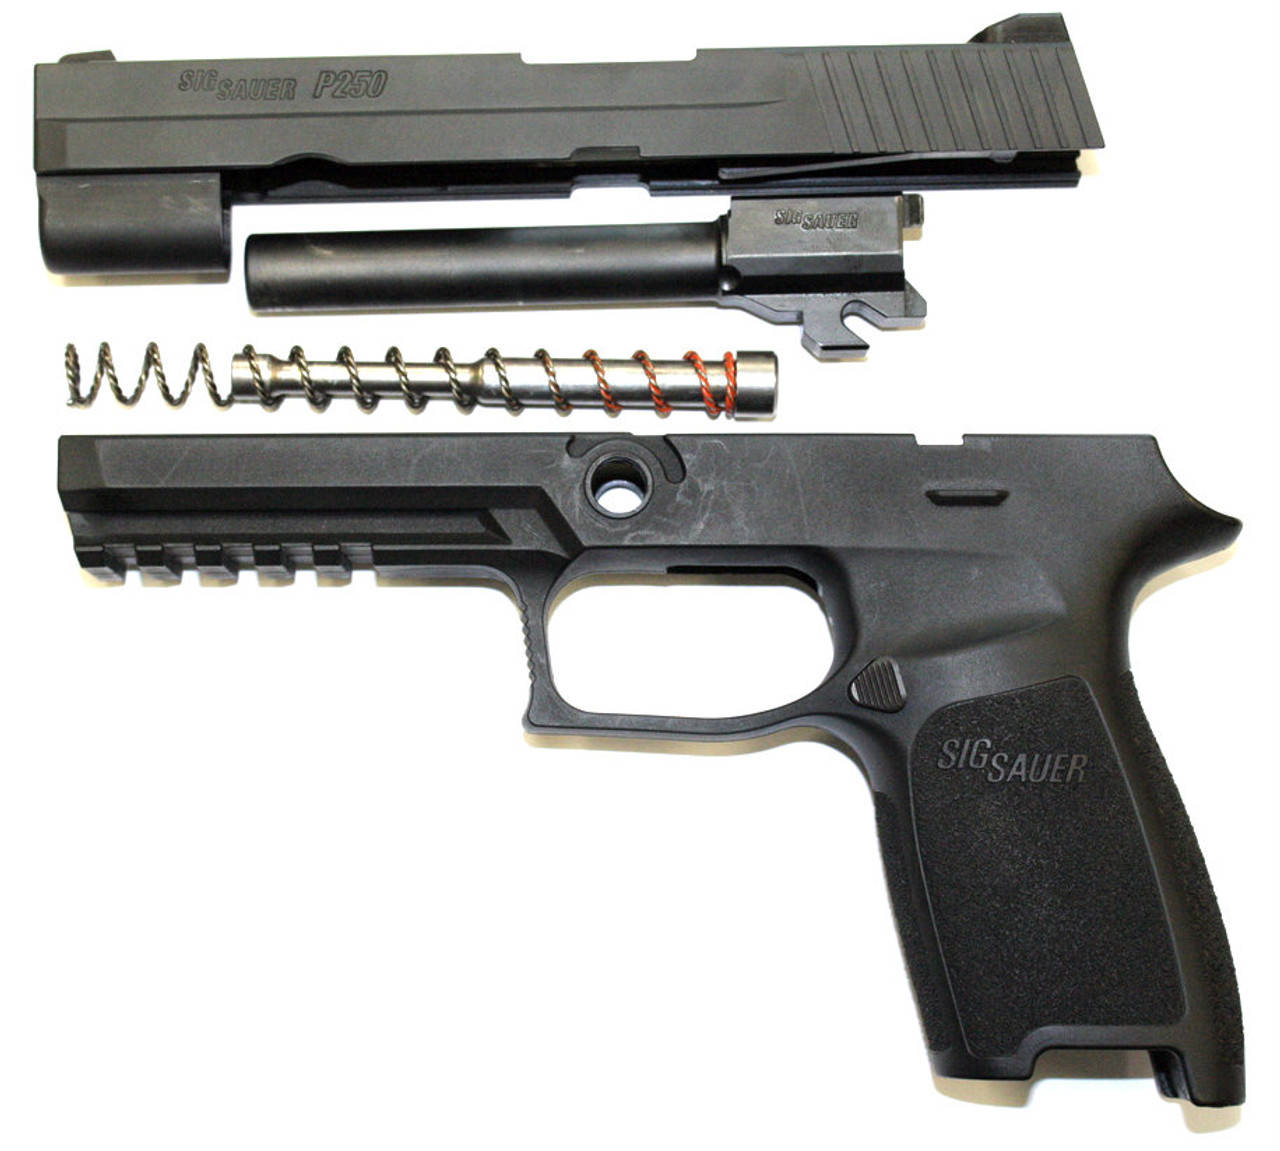 Sig Sauer P250 Full Size Grip Module W/ Complete 9mm Slide Assembly - 9mm